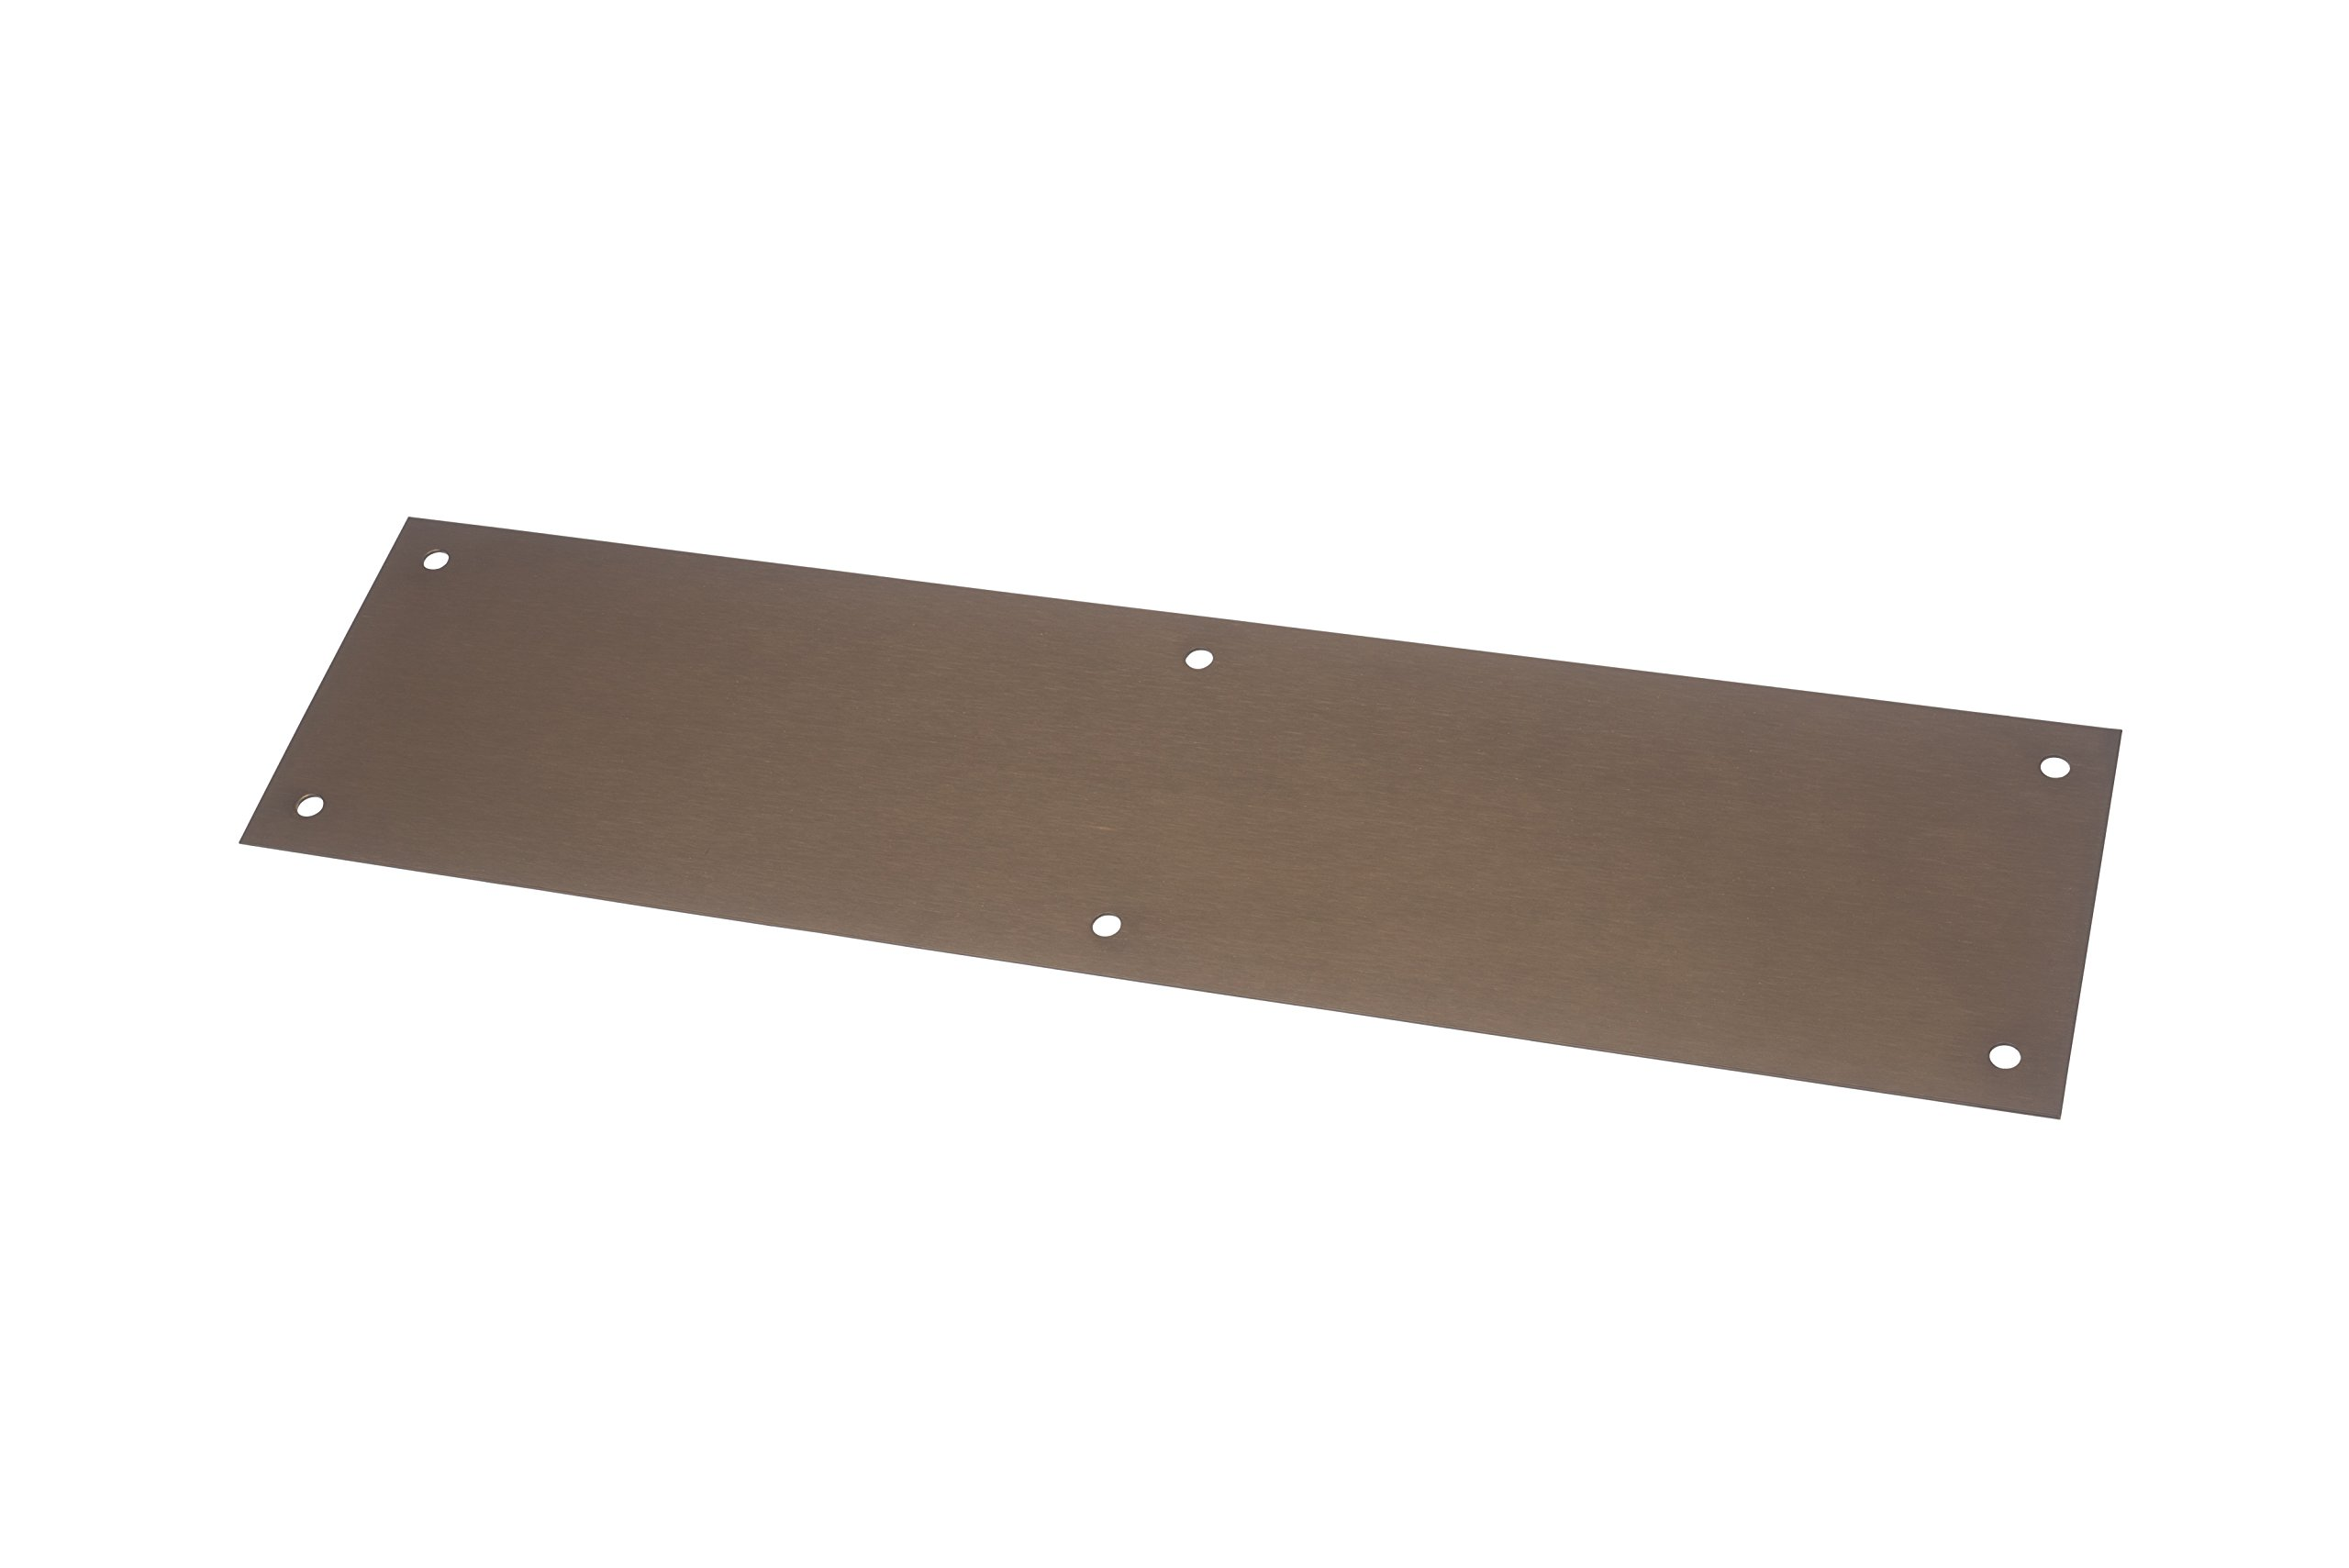 Rockwood 70C.10B Bronze Standard Push Plate, Four Beveled Edges, 16'' Height x 4'' Width x 0.050'' Thick, Satin Oxidized Oil Rubbed Finish by Rockwood